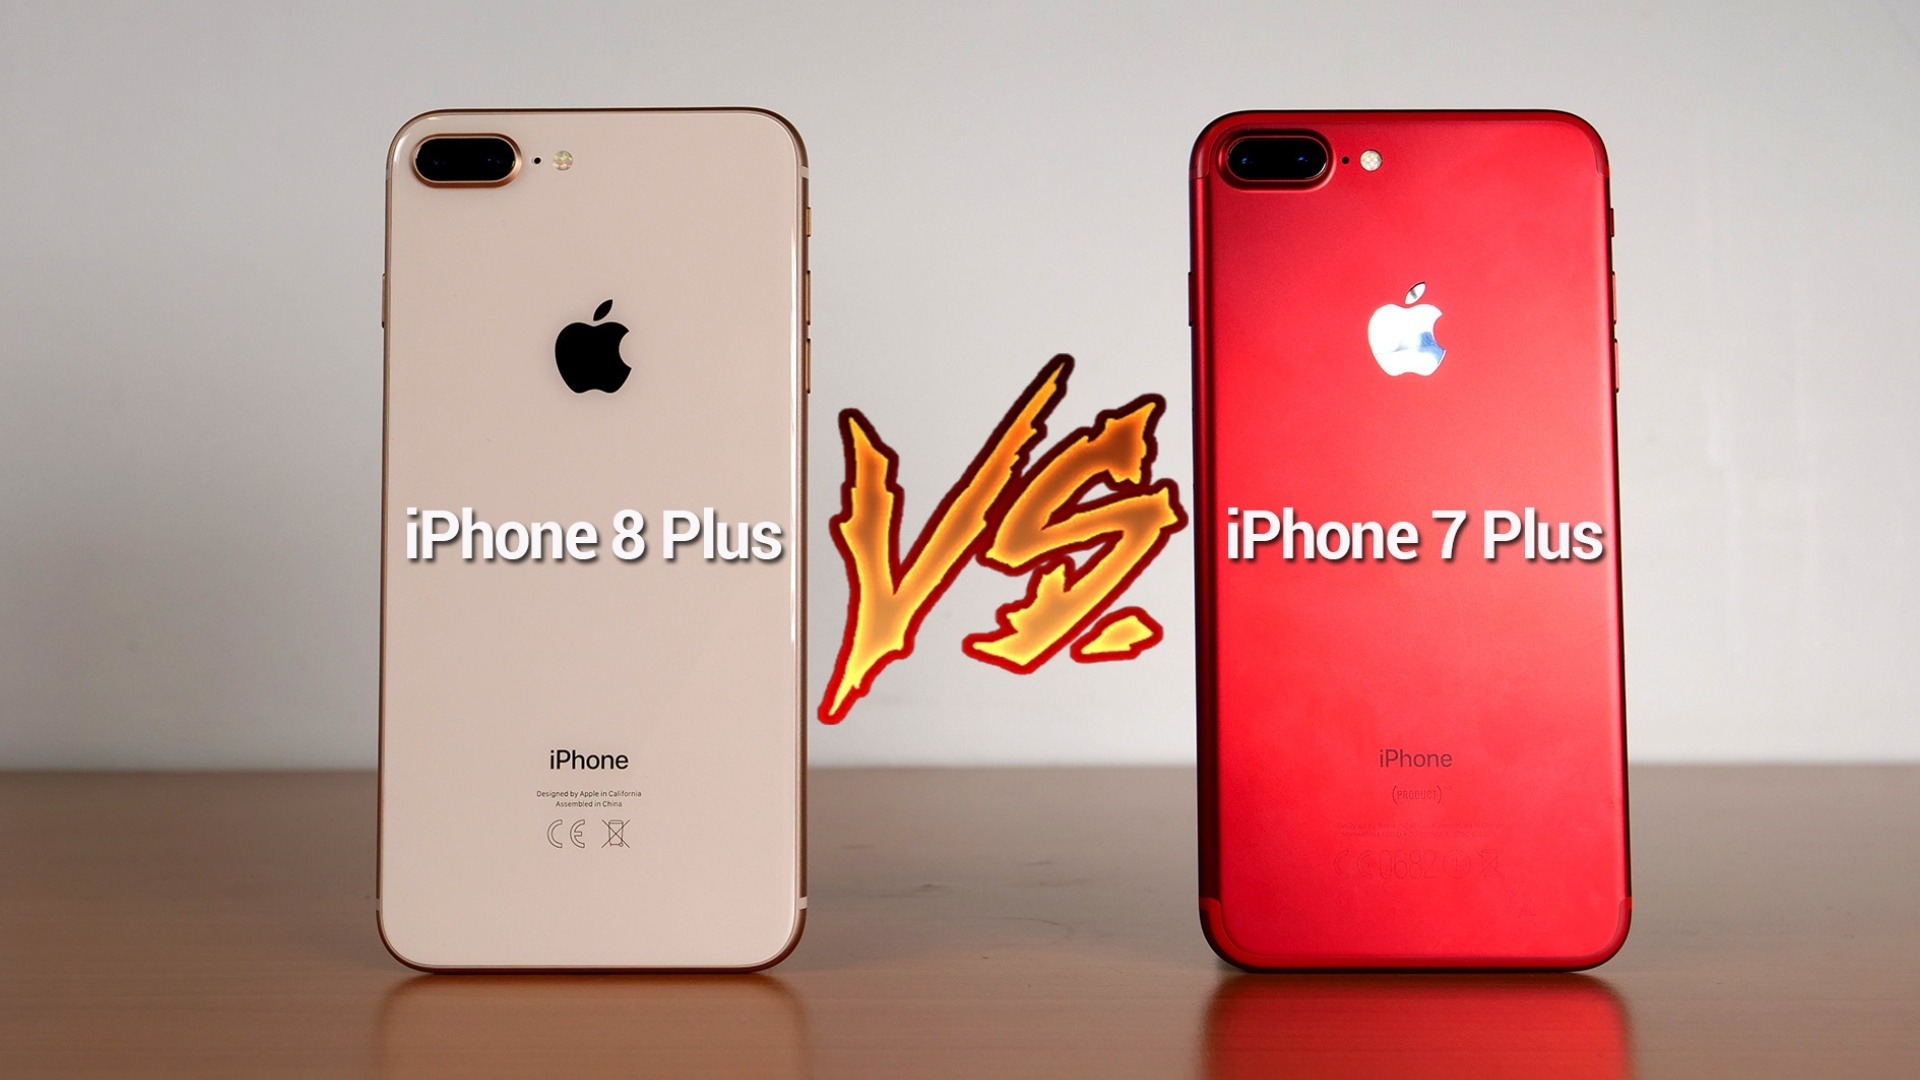 Iphone 7 Et Iphone 8 D Apple Une Vraie Difference